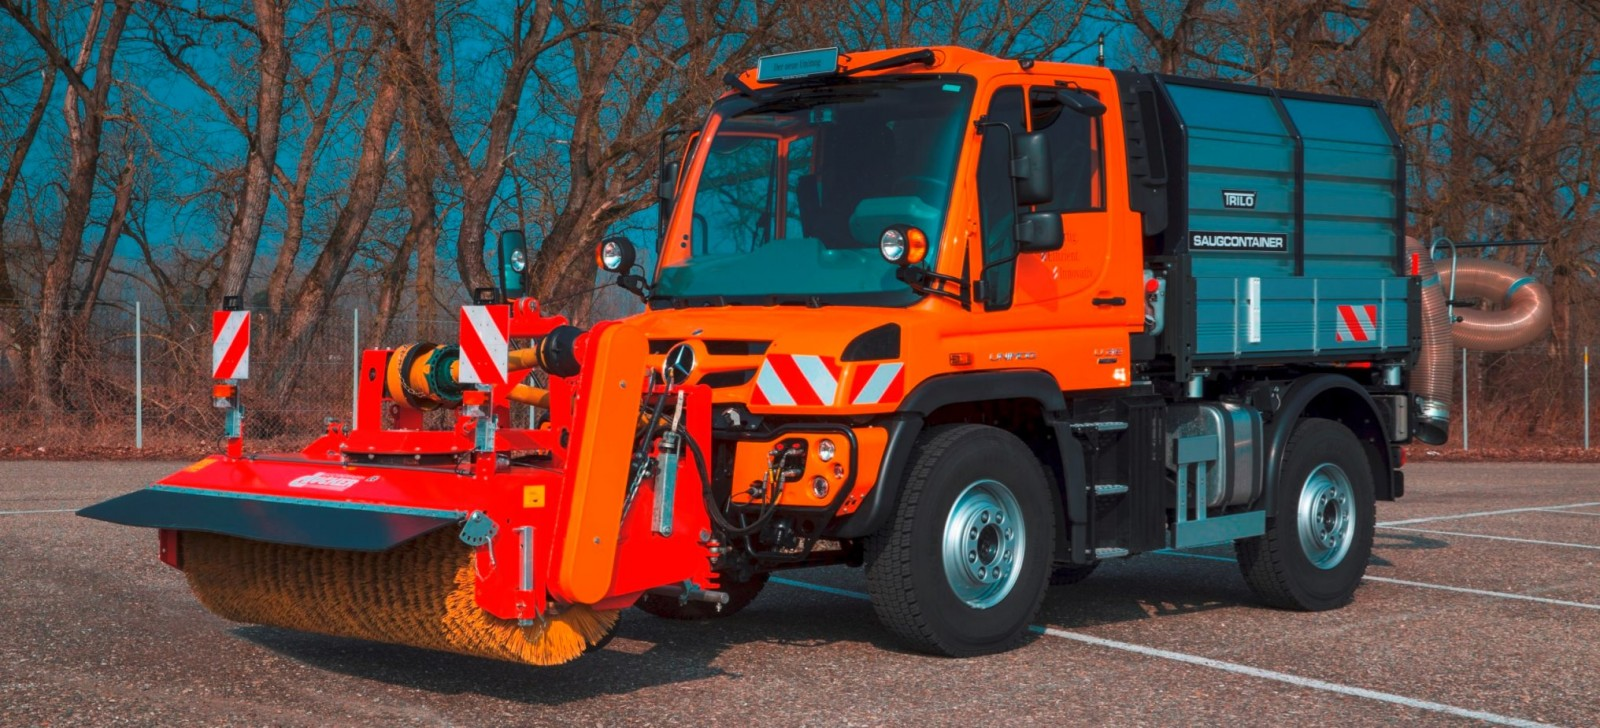 2015 Unimog U218 and U423 Upfit Showcase 106